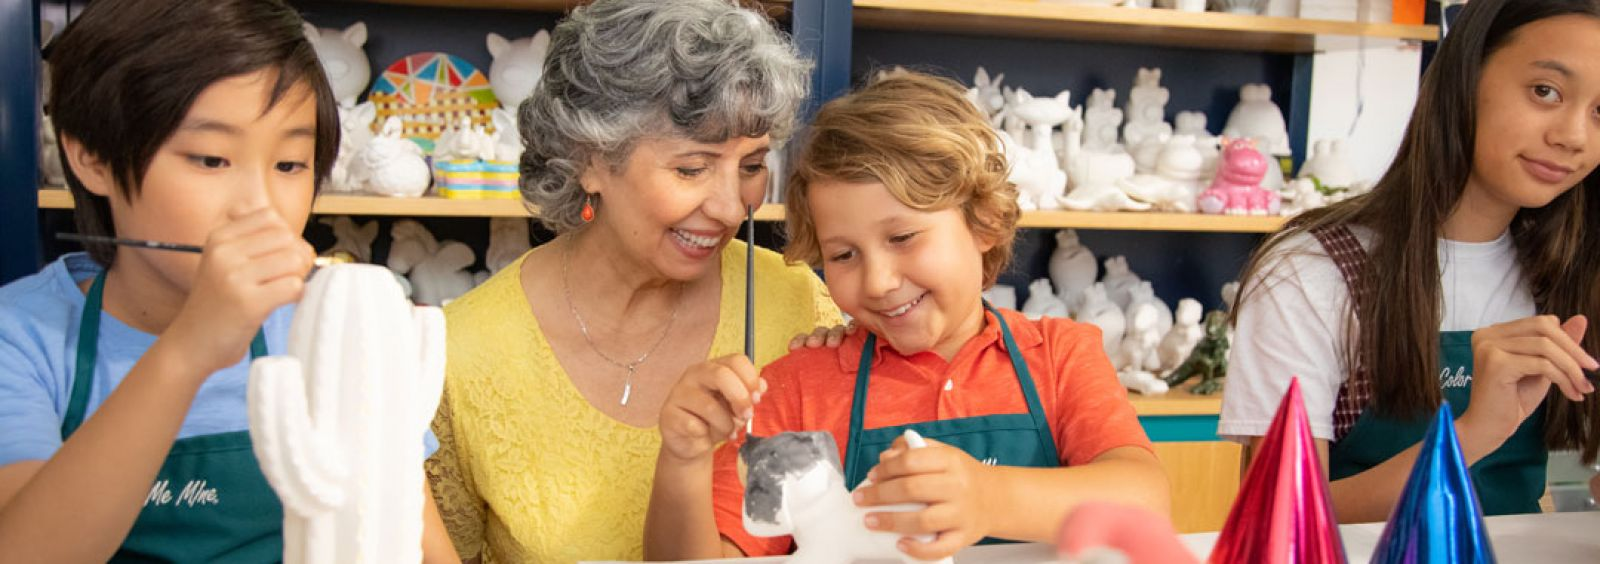 An older woman helps a young boy paint a piece of pottery at a color me mine studio